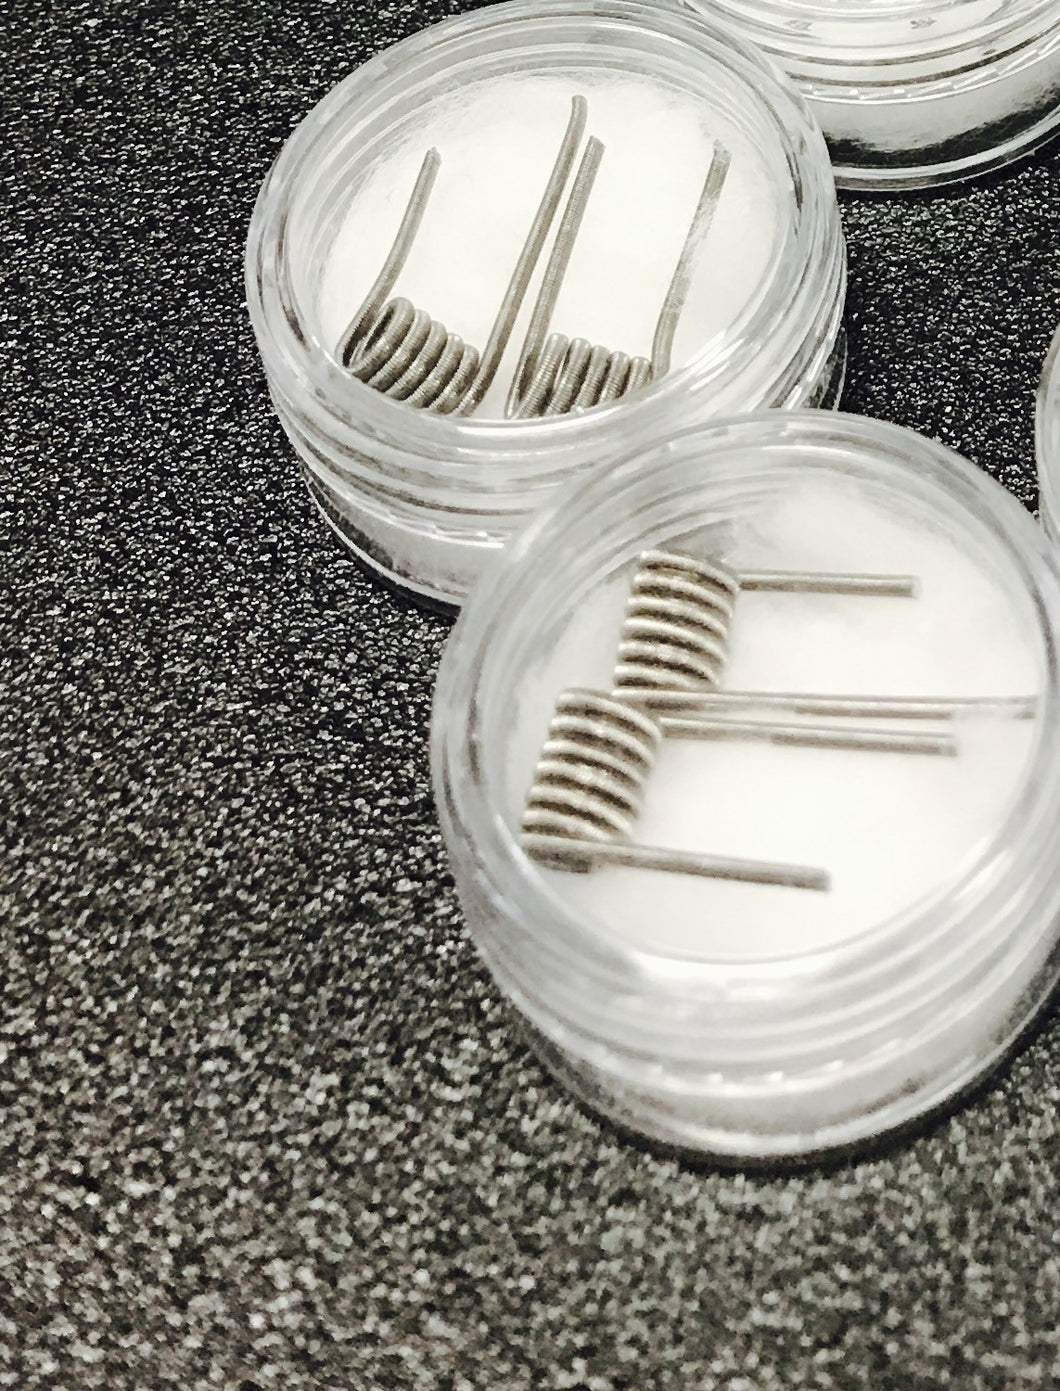 Diesel Customs Fused Clapton's 26N80/36Kanthal